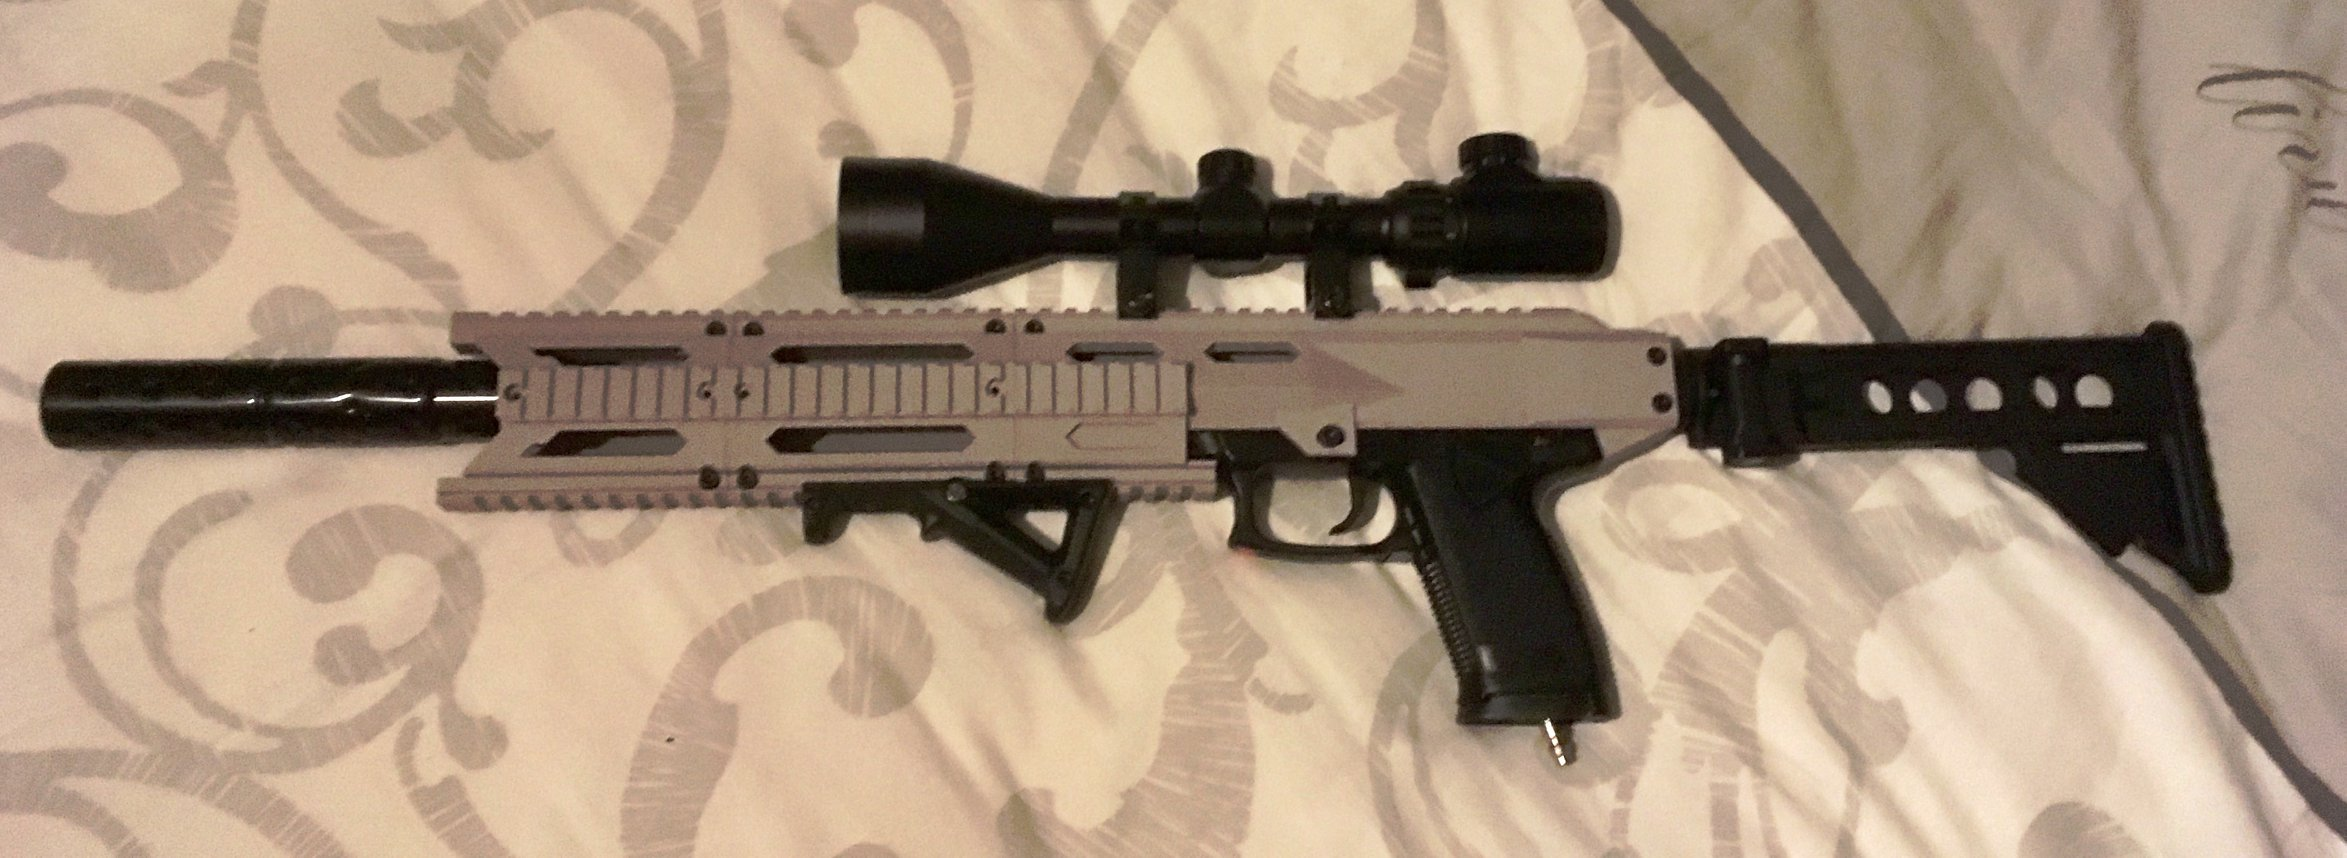 FA Carbine Kit Example 16